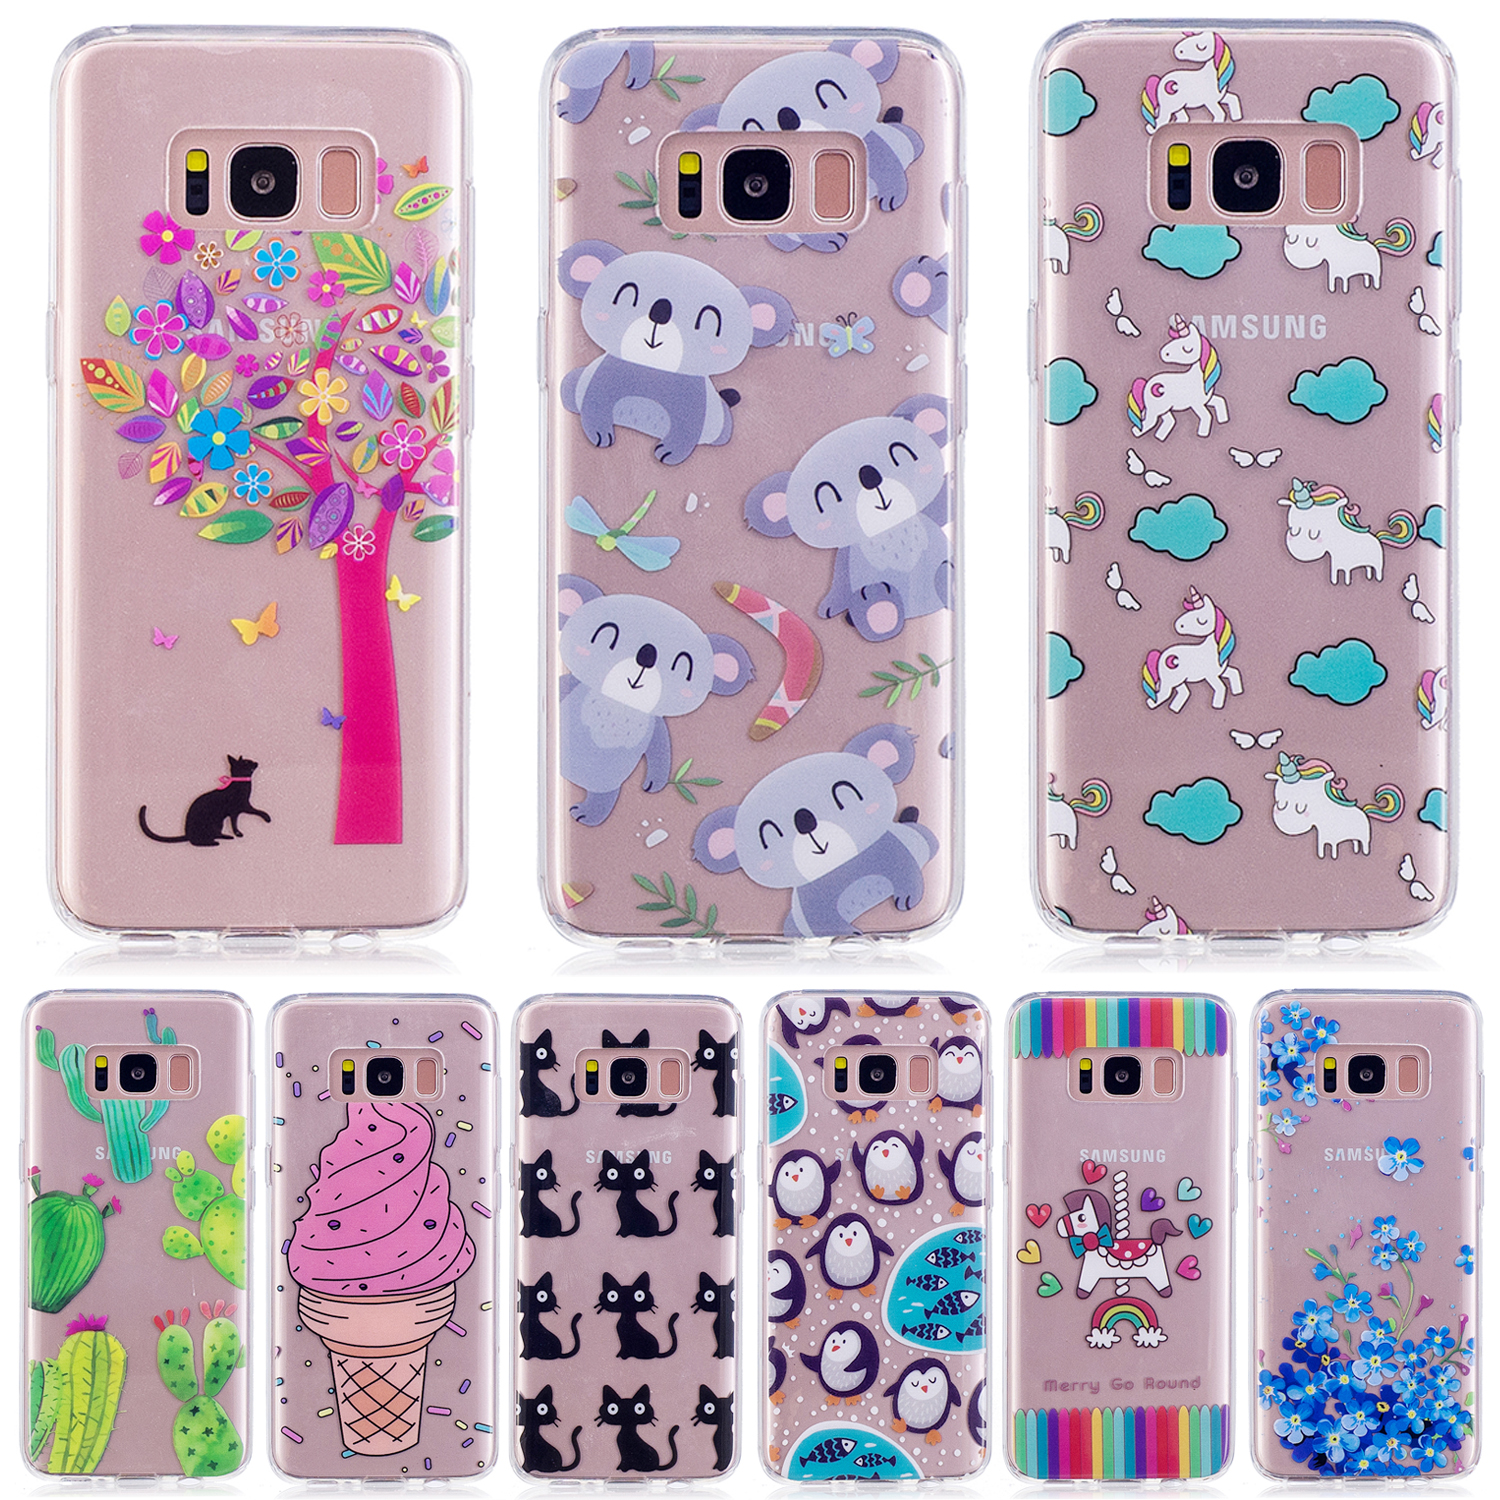 Phone Cover for Galaxy S 8 TPU Cases Pattern Printing IMD TPU Shell Cover Case for Samsung Galaxy S8 Unicorn